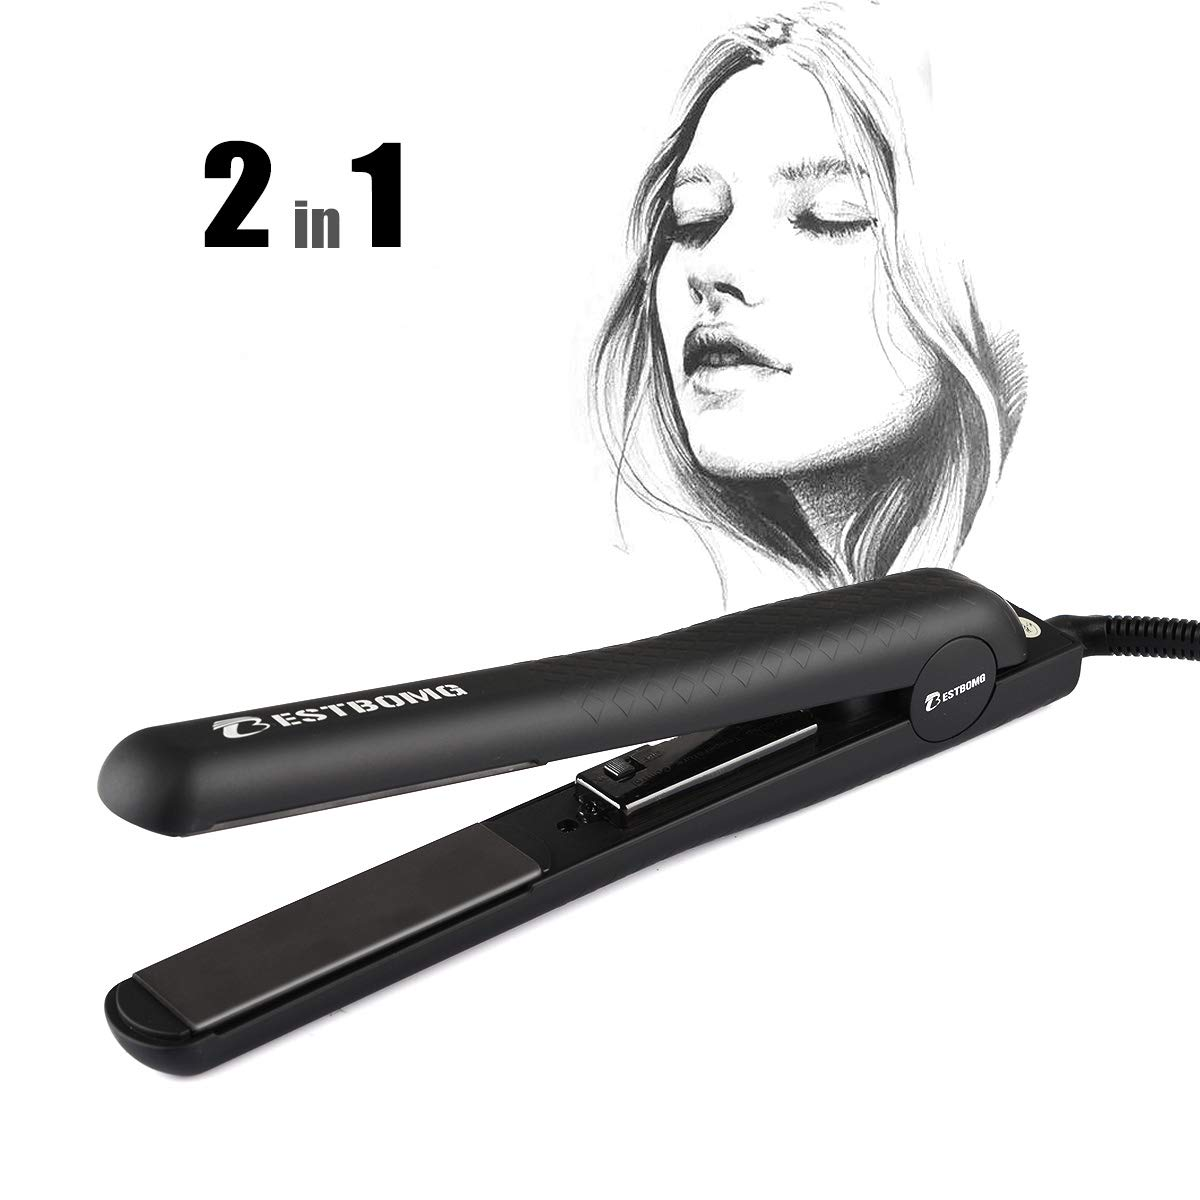 BESTBOMG Professional Ionic Flat Iron Worldwide Dual Voltage Hair Straightener,Ceramic Tourmaline,Instant Heat Up for Hair Styling with Rotating Adjustable Microchip Temperature Control Salon High